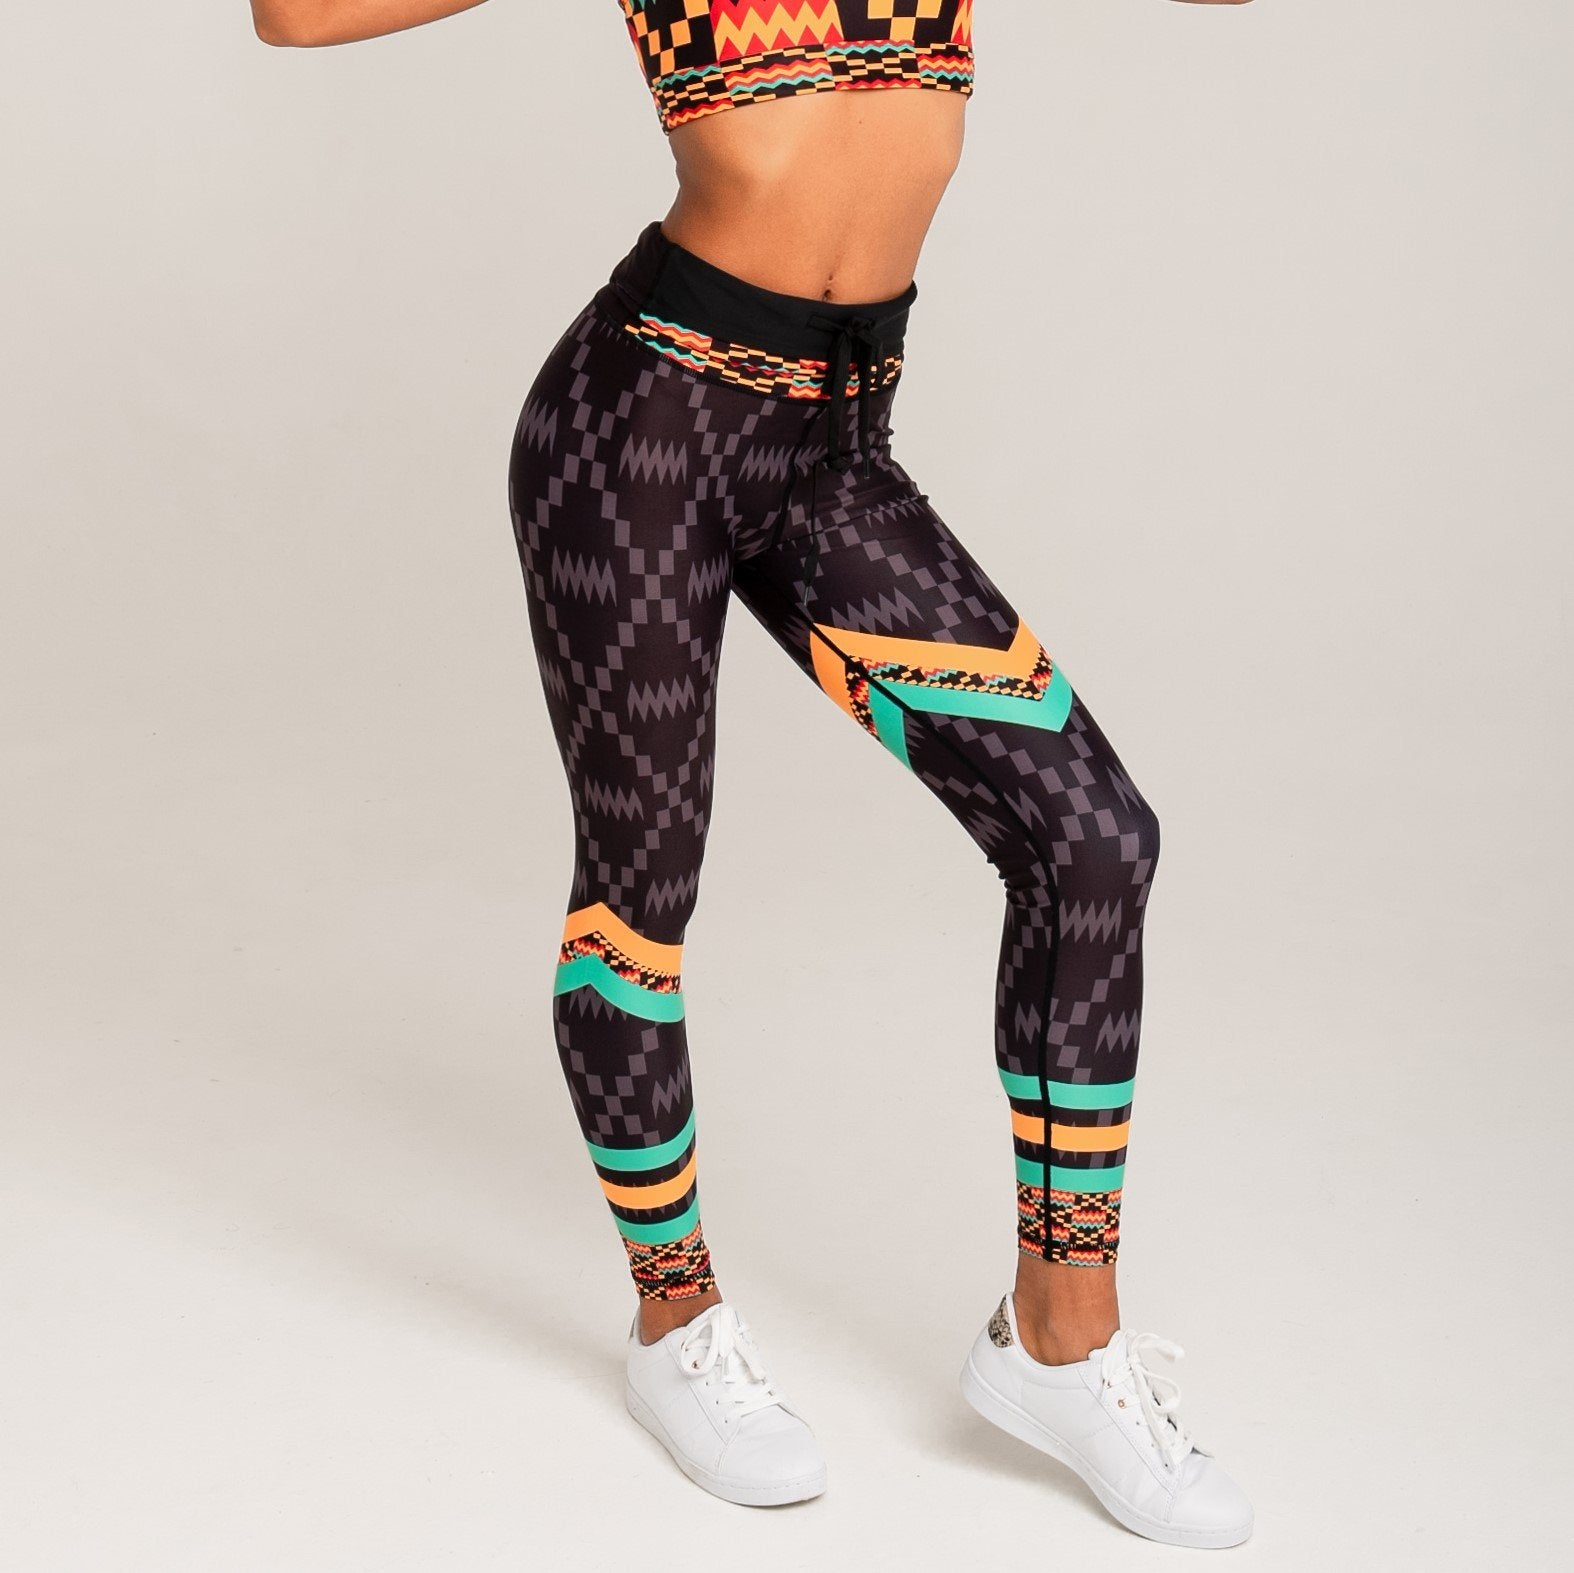 Kayentee Splash Leggings